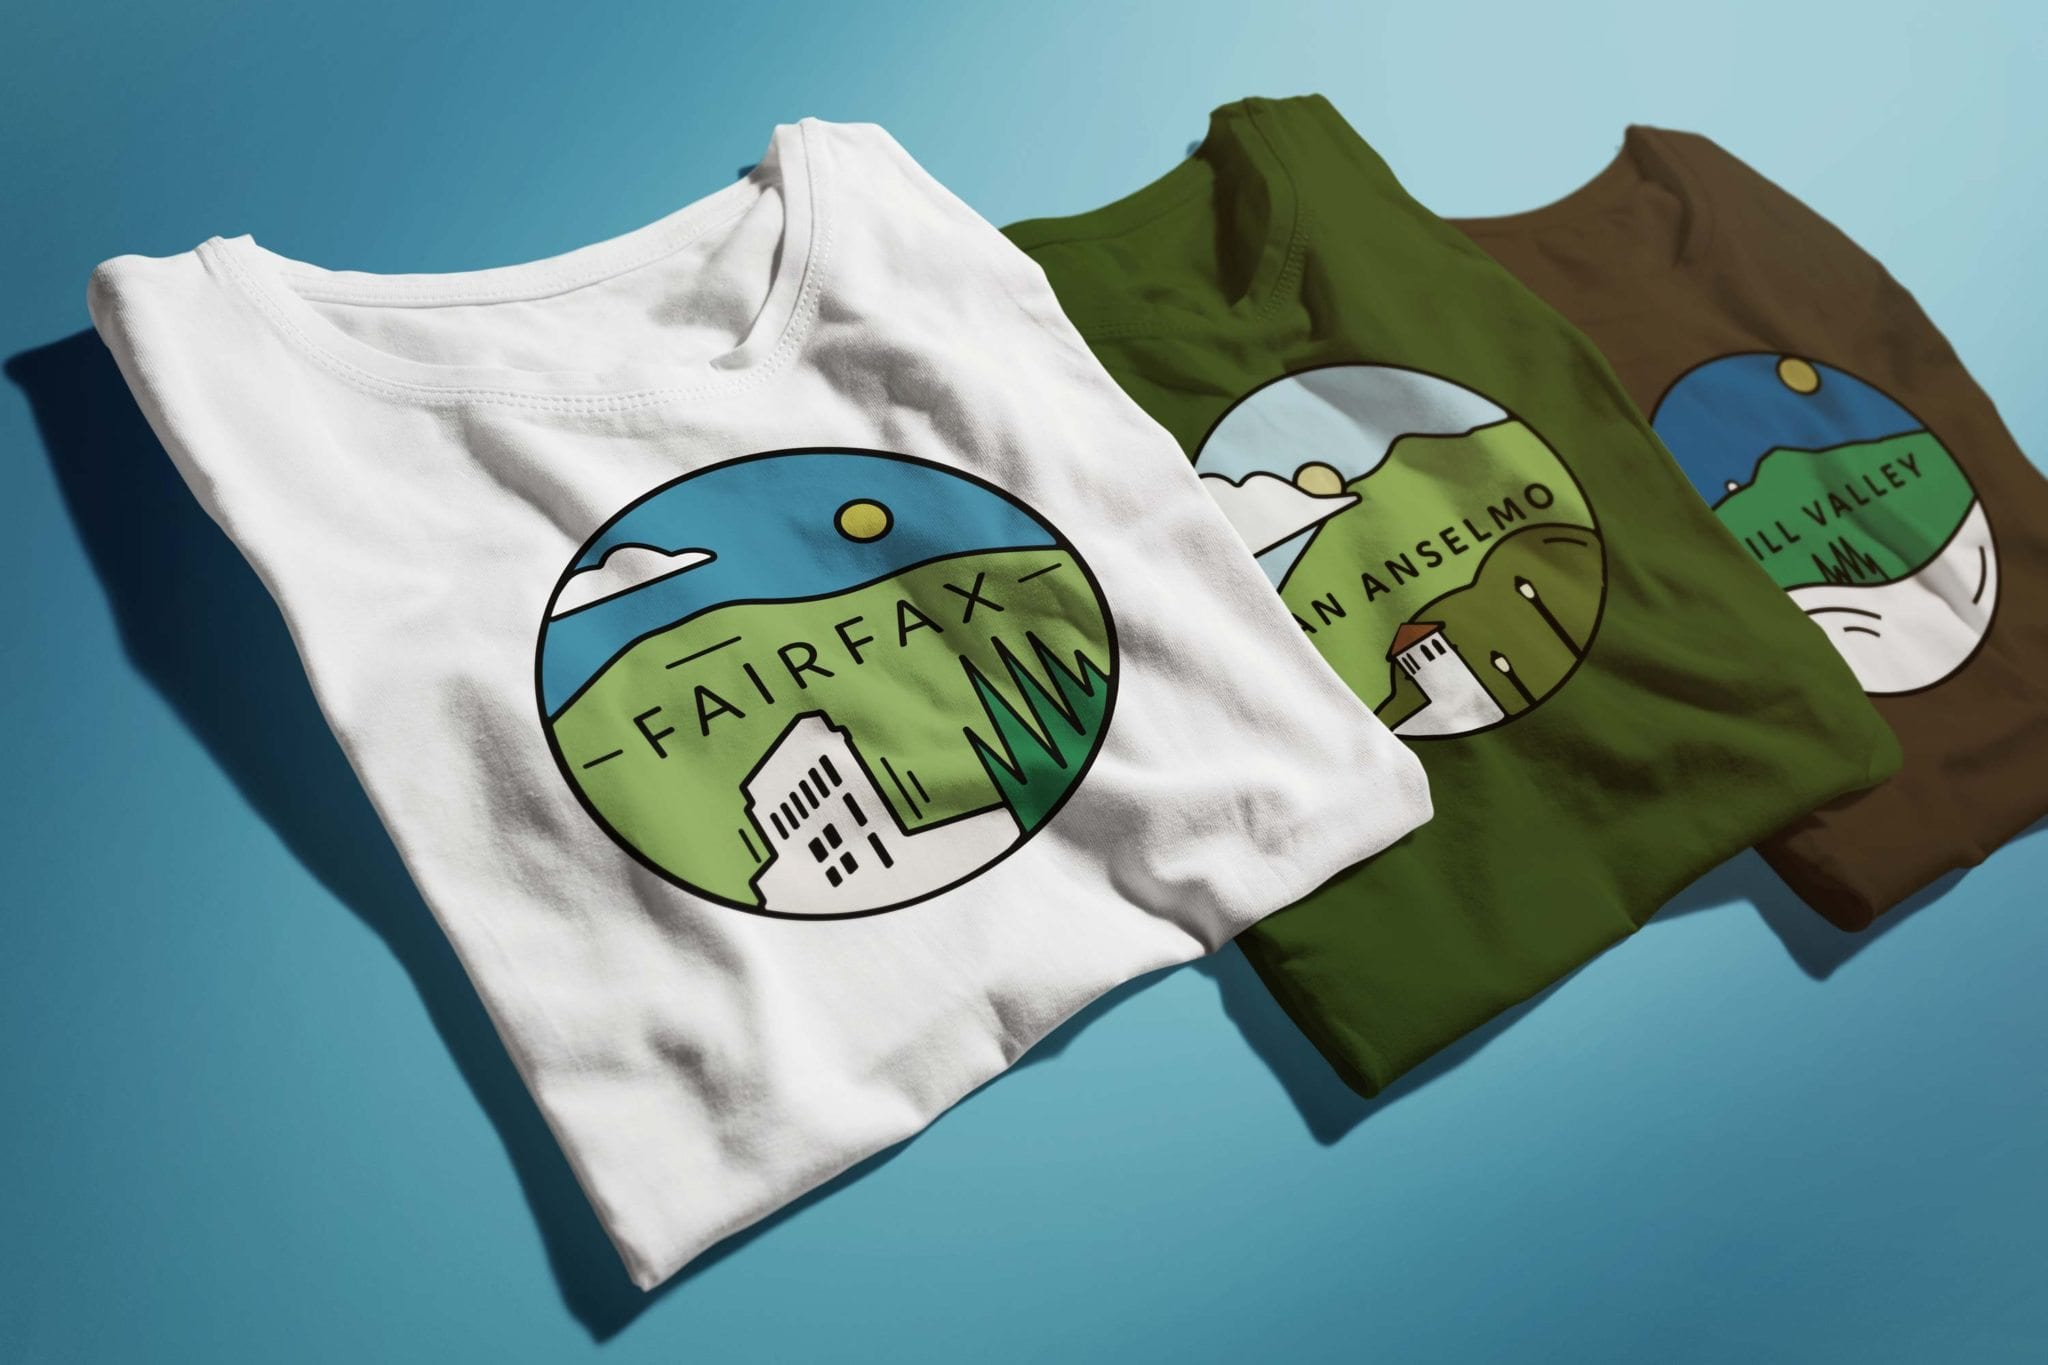 New Marin Town Logos for Marin Gear Shop